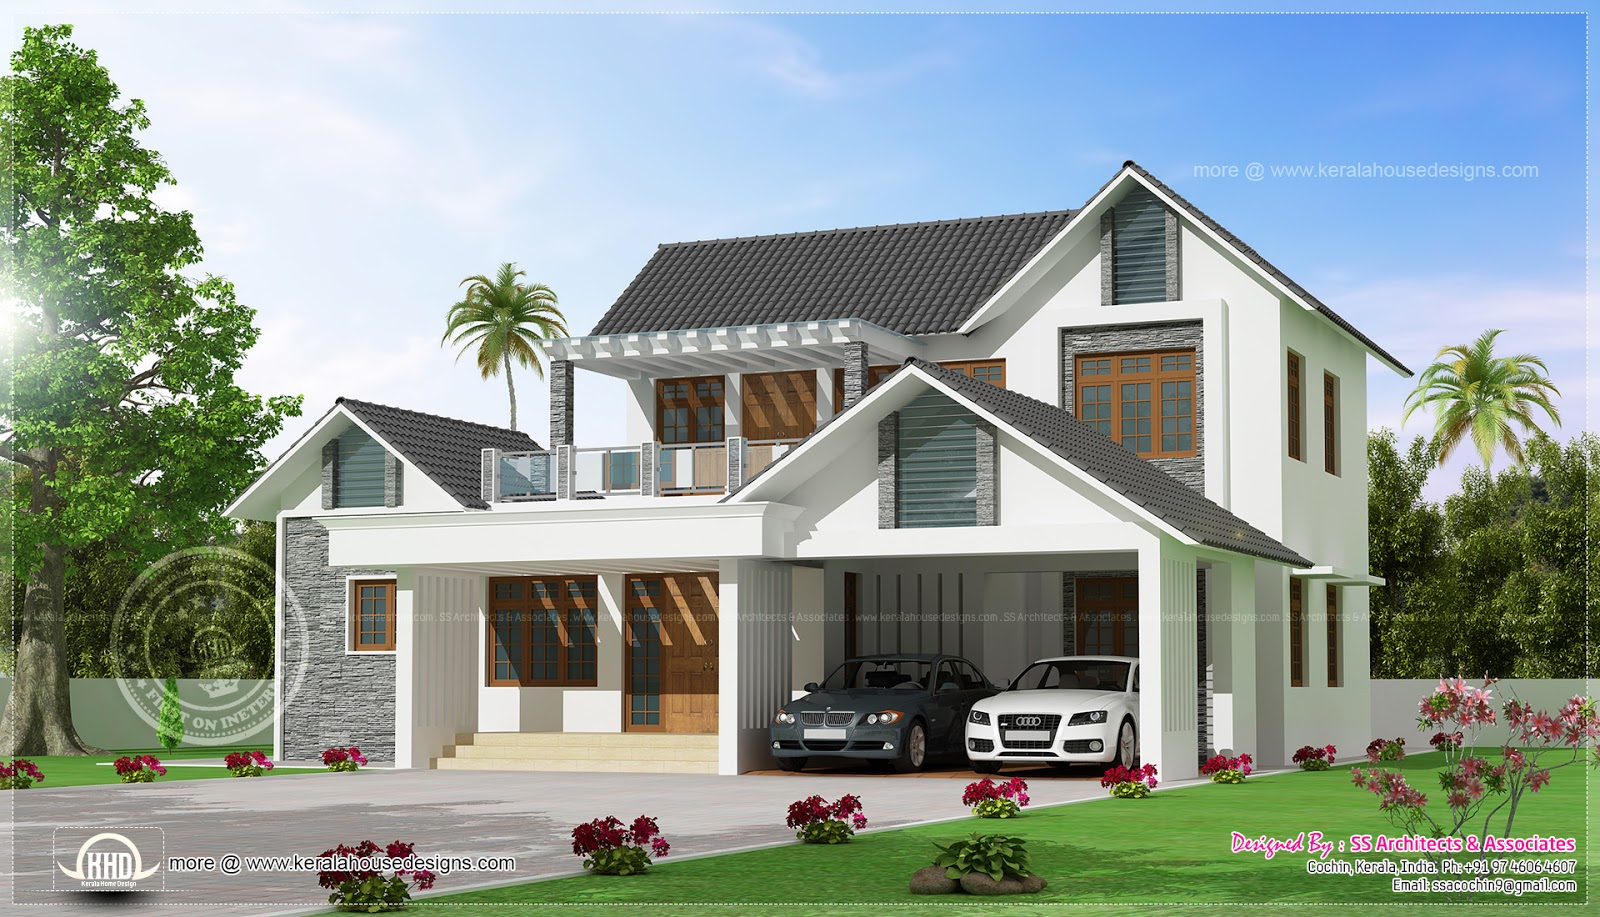 Awesome modern villa exterior elevation house design plans Modern villa plan